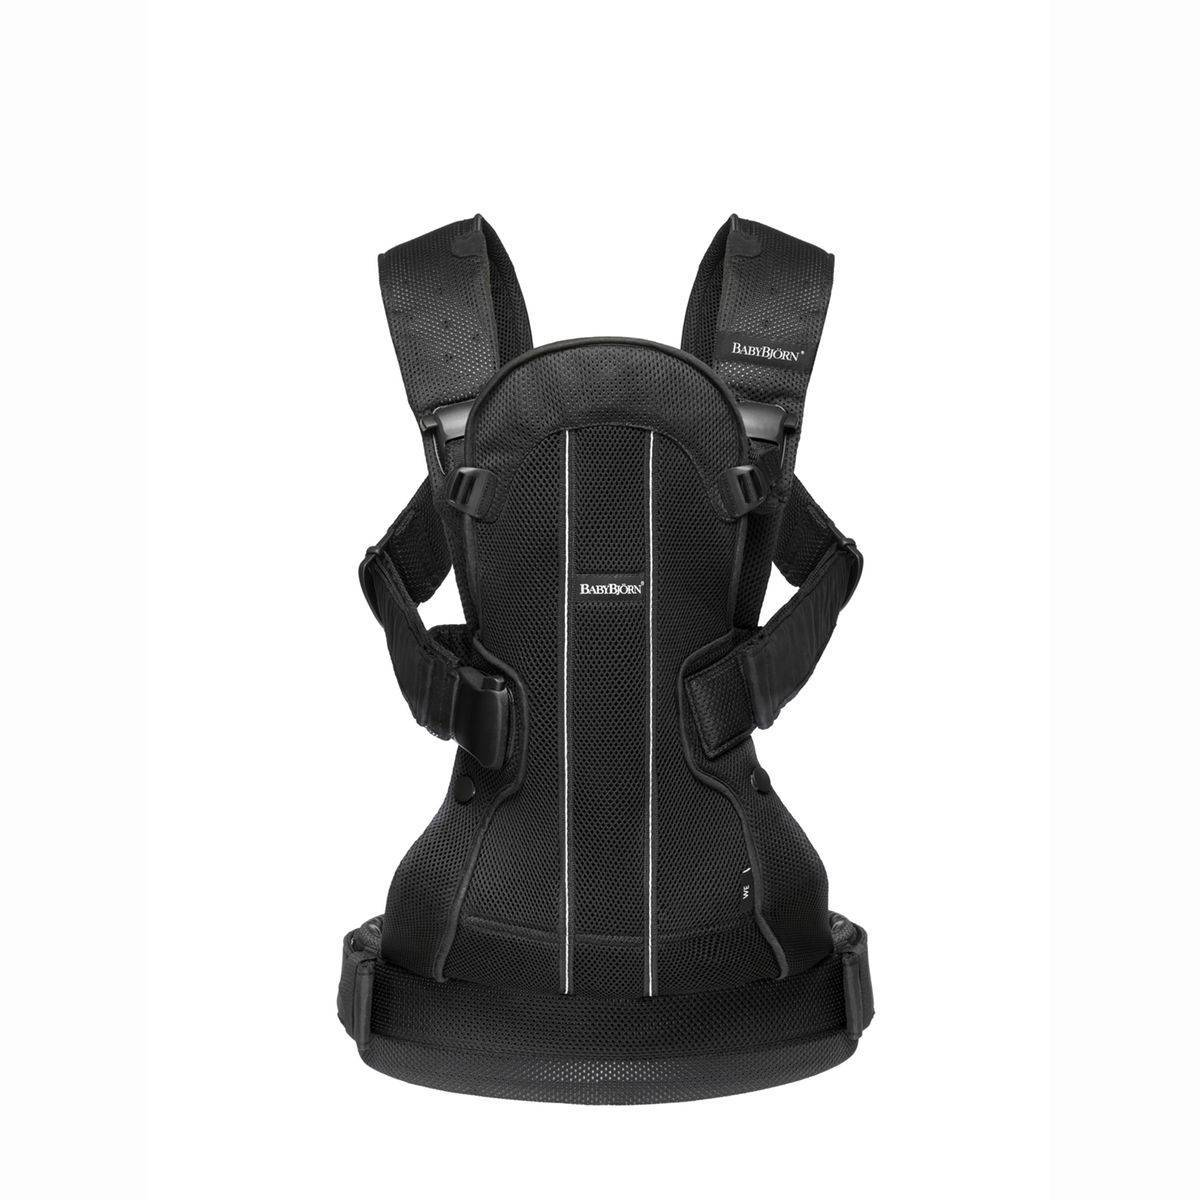 BABYBJORN PORTE BEBE CARRIER WE AIR MESH - BABYBJORN